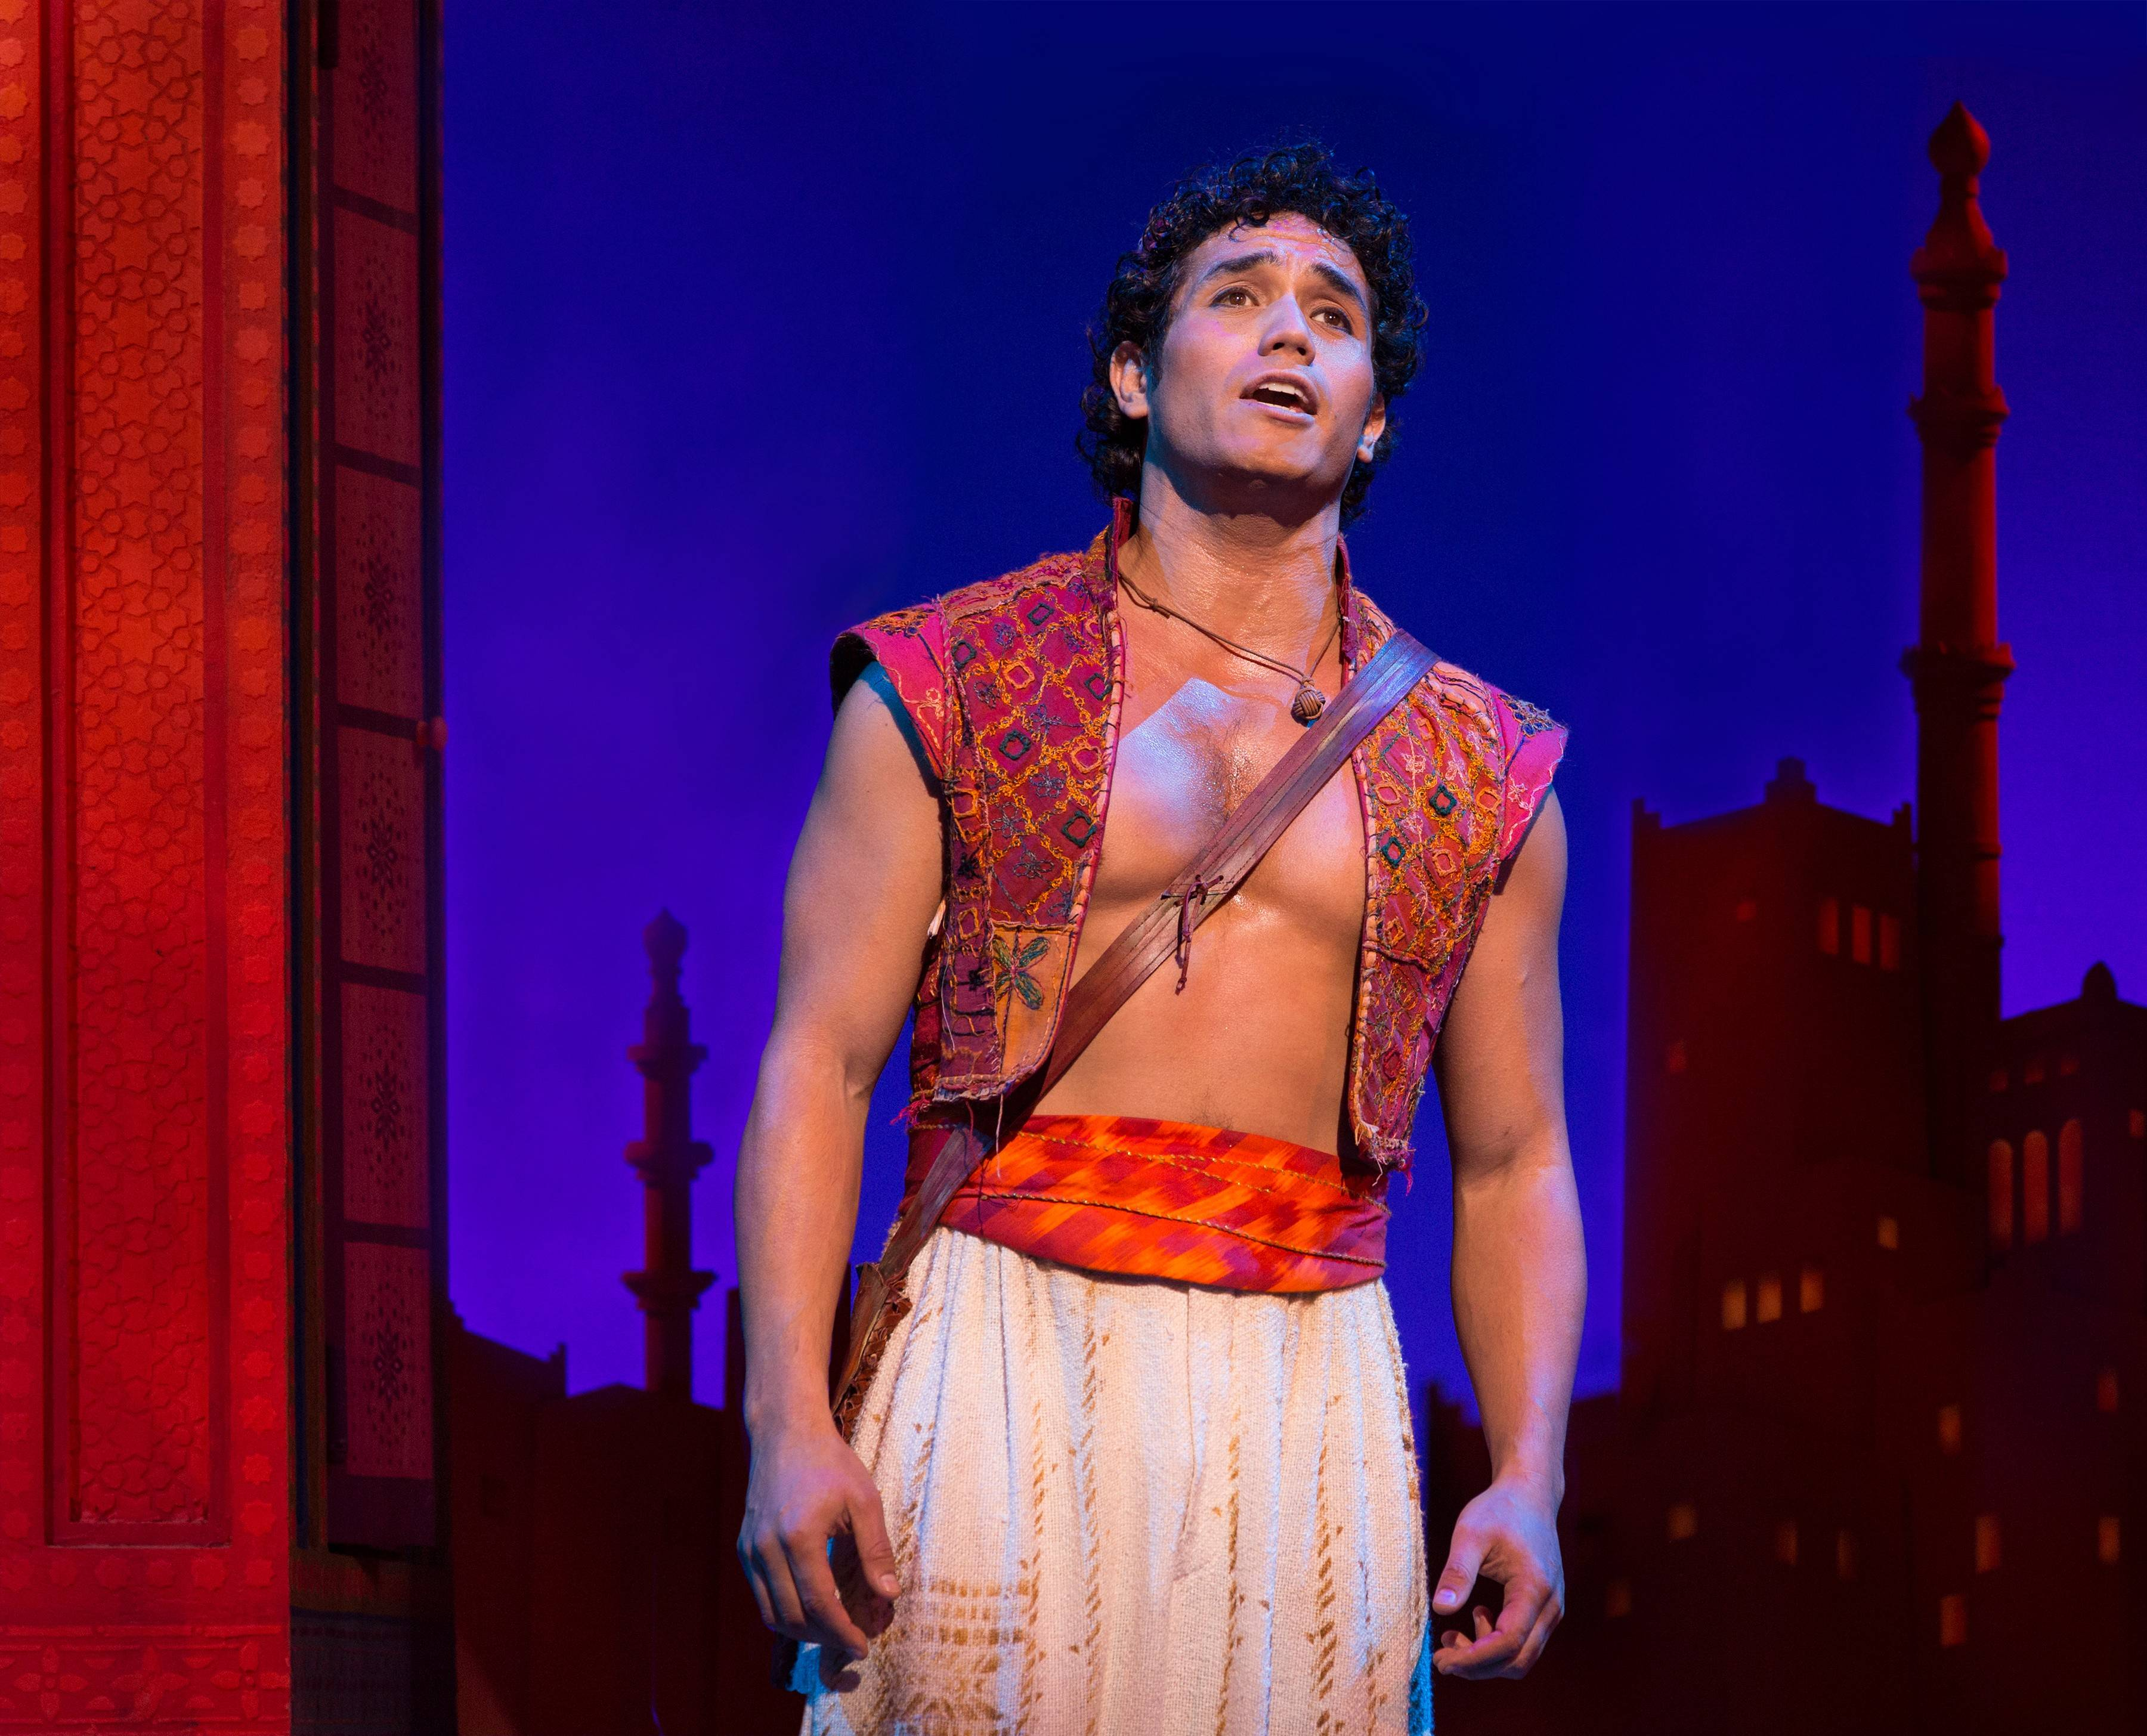 "Original Broadway star Adam Jacobs returns to play the title role of ""Aladdin"" in its national touring launch in Chicago. Ten weeks have been added to the Windy City run at the Cadillac Palace Theatre from April 11 to Sept. 10."